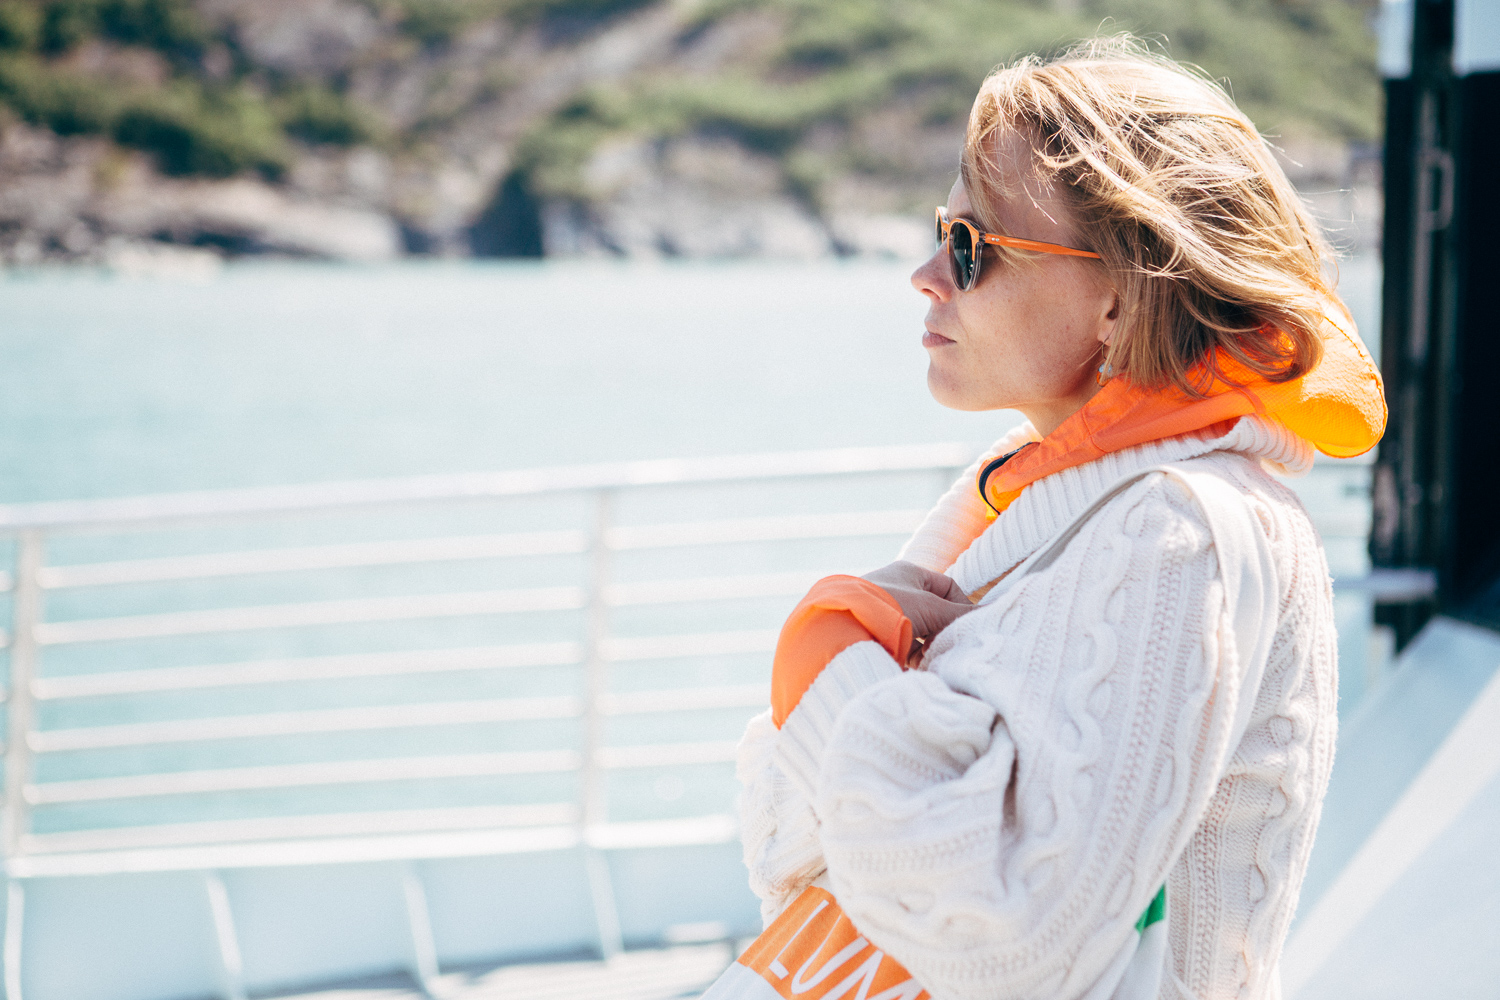 Our trip captain, Tiina, was prepared and also very stylish. (Shot on my DSLR)